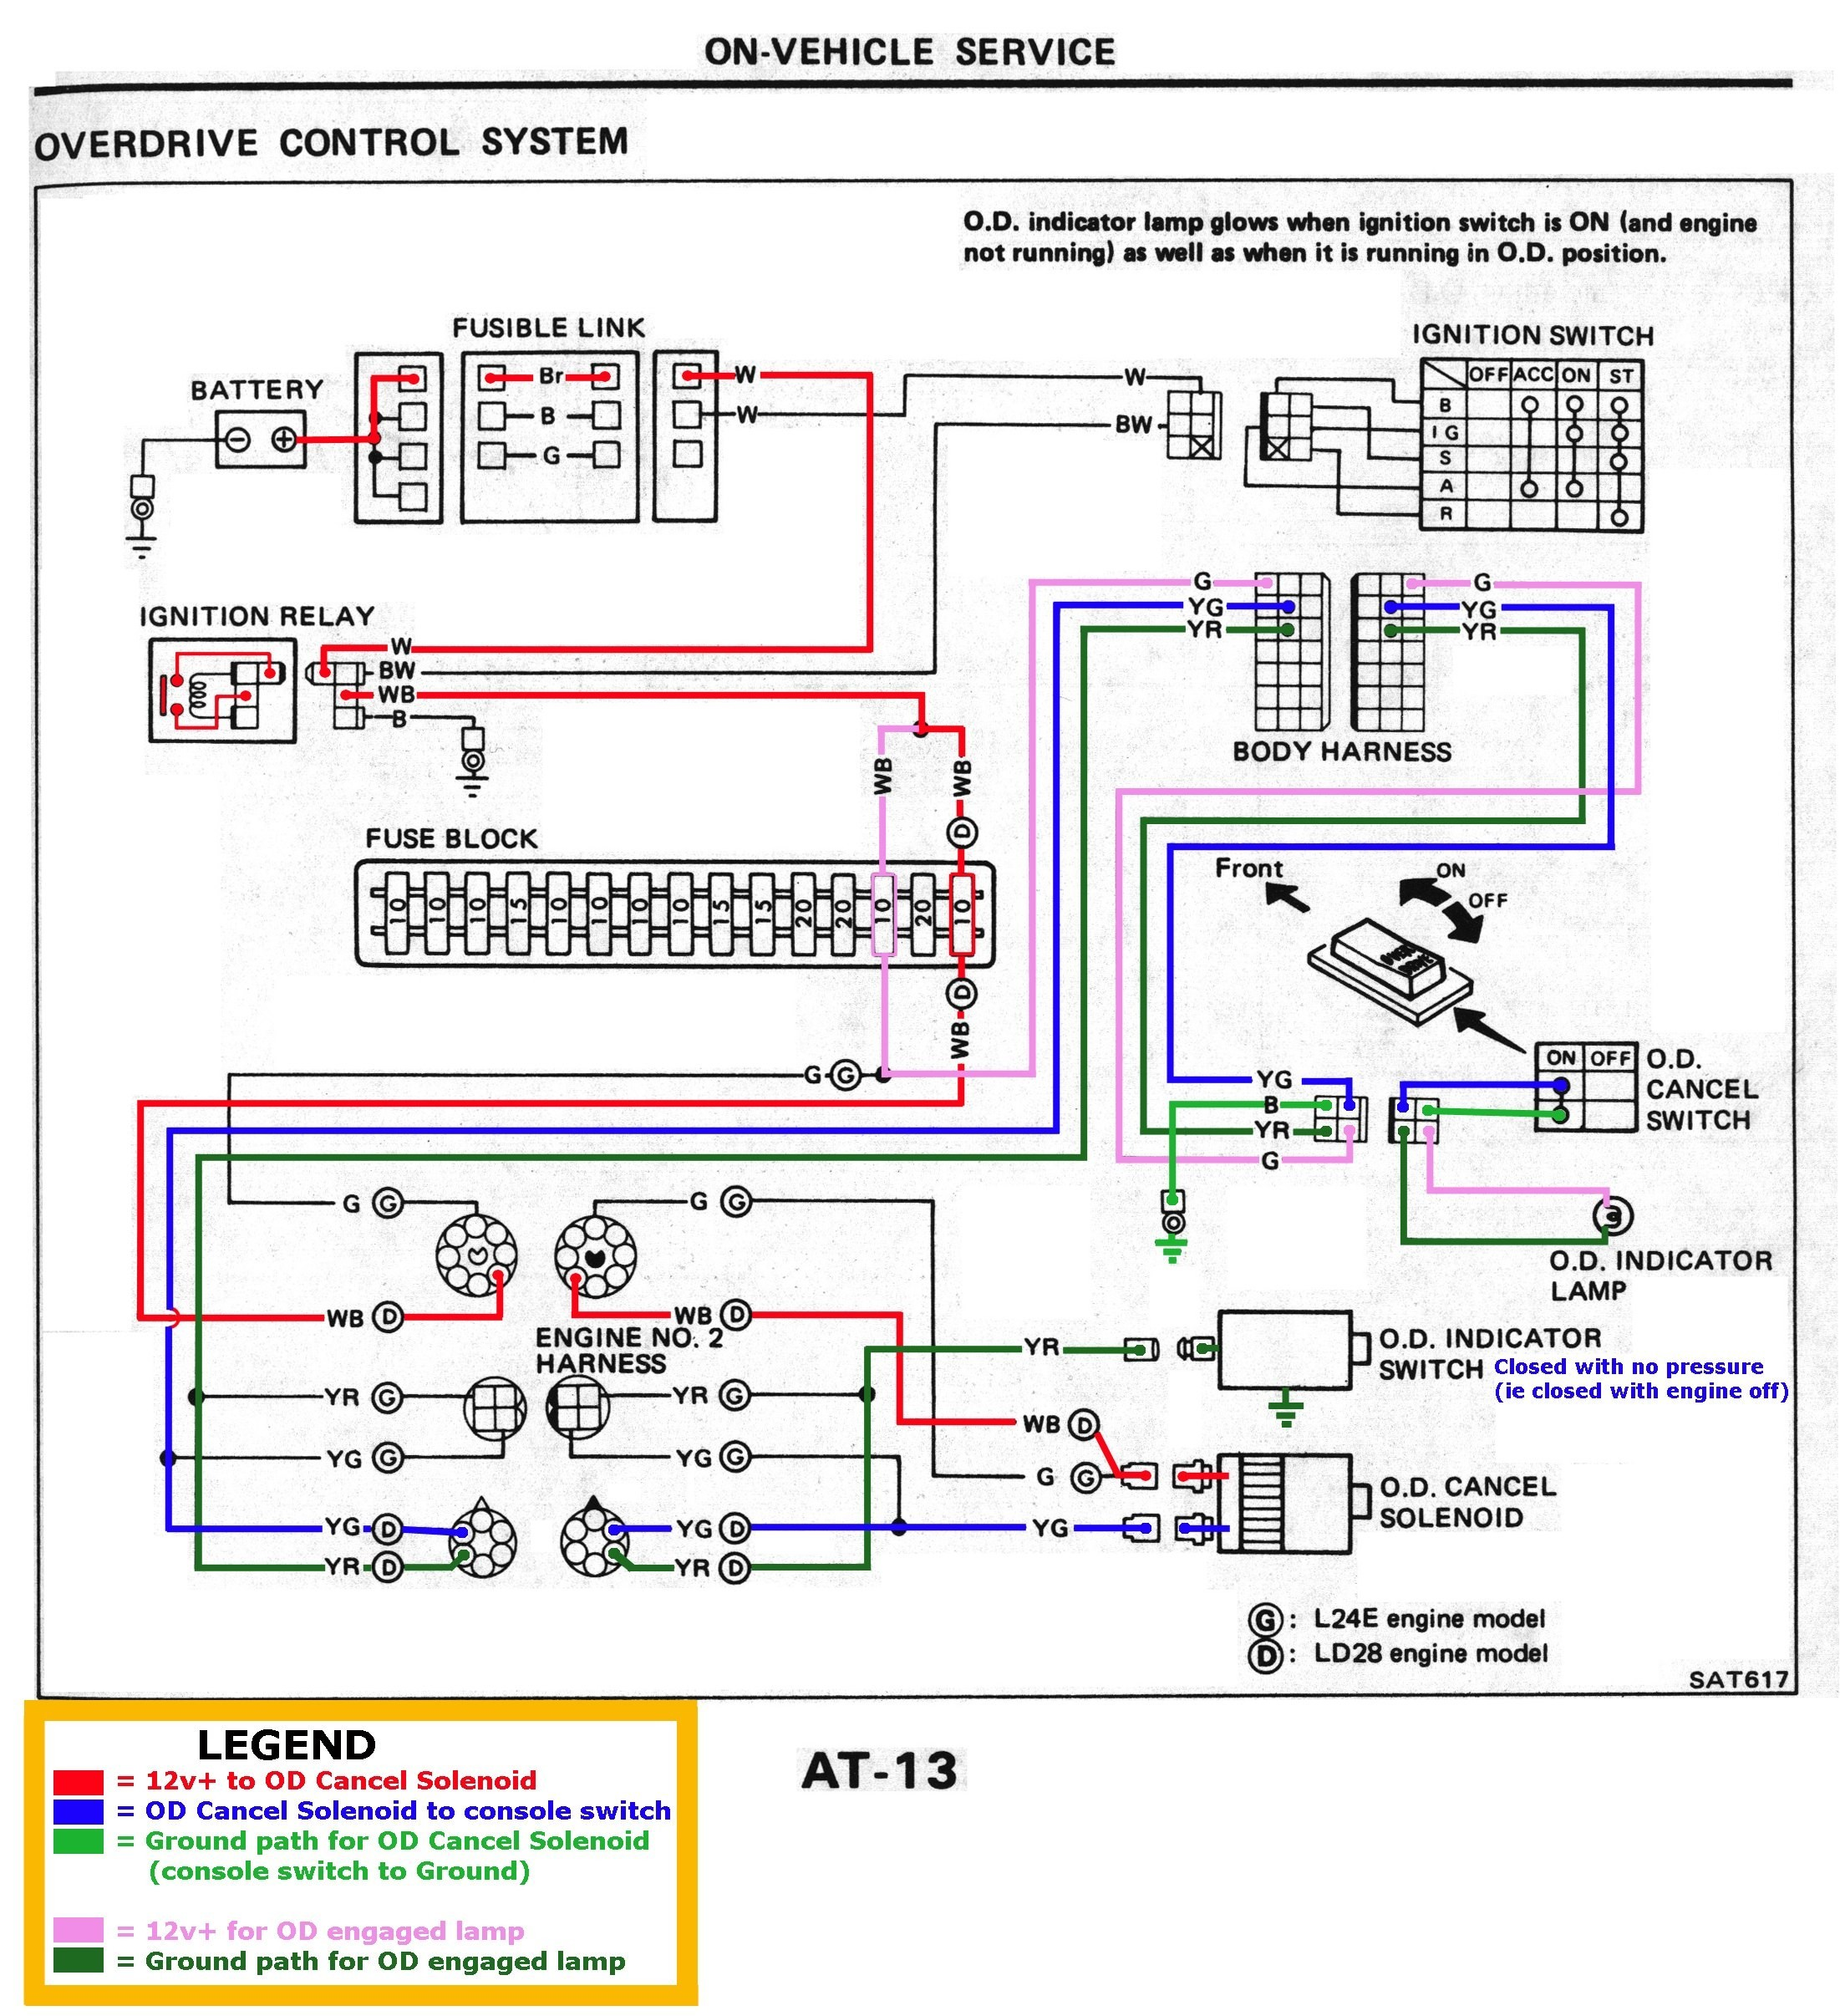 1983 Chevy Truck Wiring Diagram Nissan Sentra Engine Diagram Nissan Sel forums • View topic L4n71b Of 1983 Chevy Truck Wiring Diagram